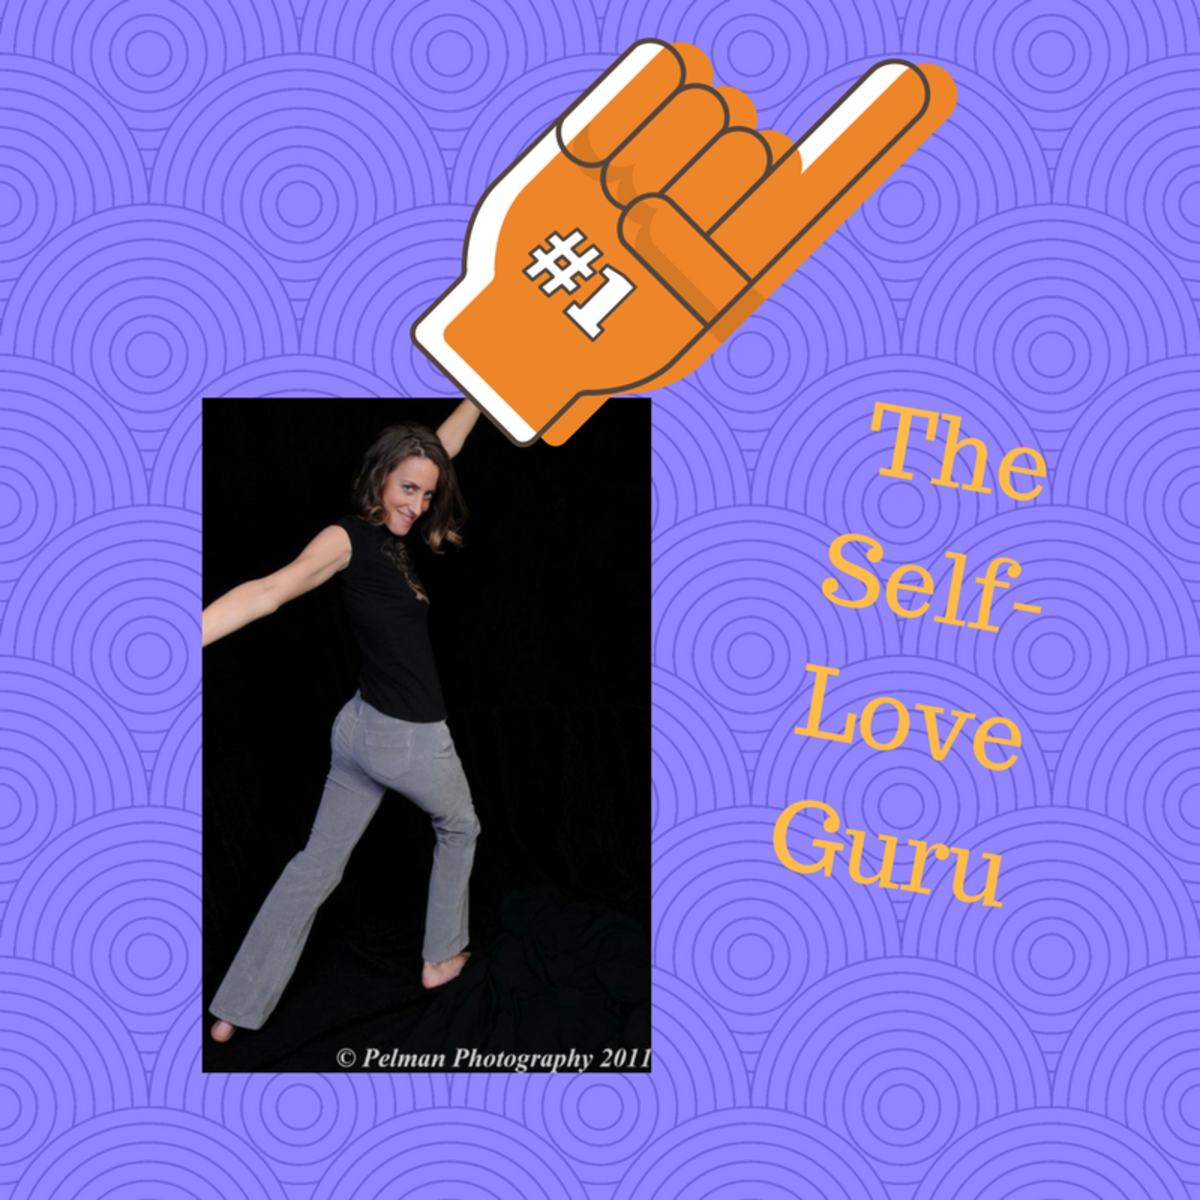 what-are-the-keys-to-self-love